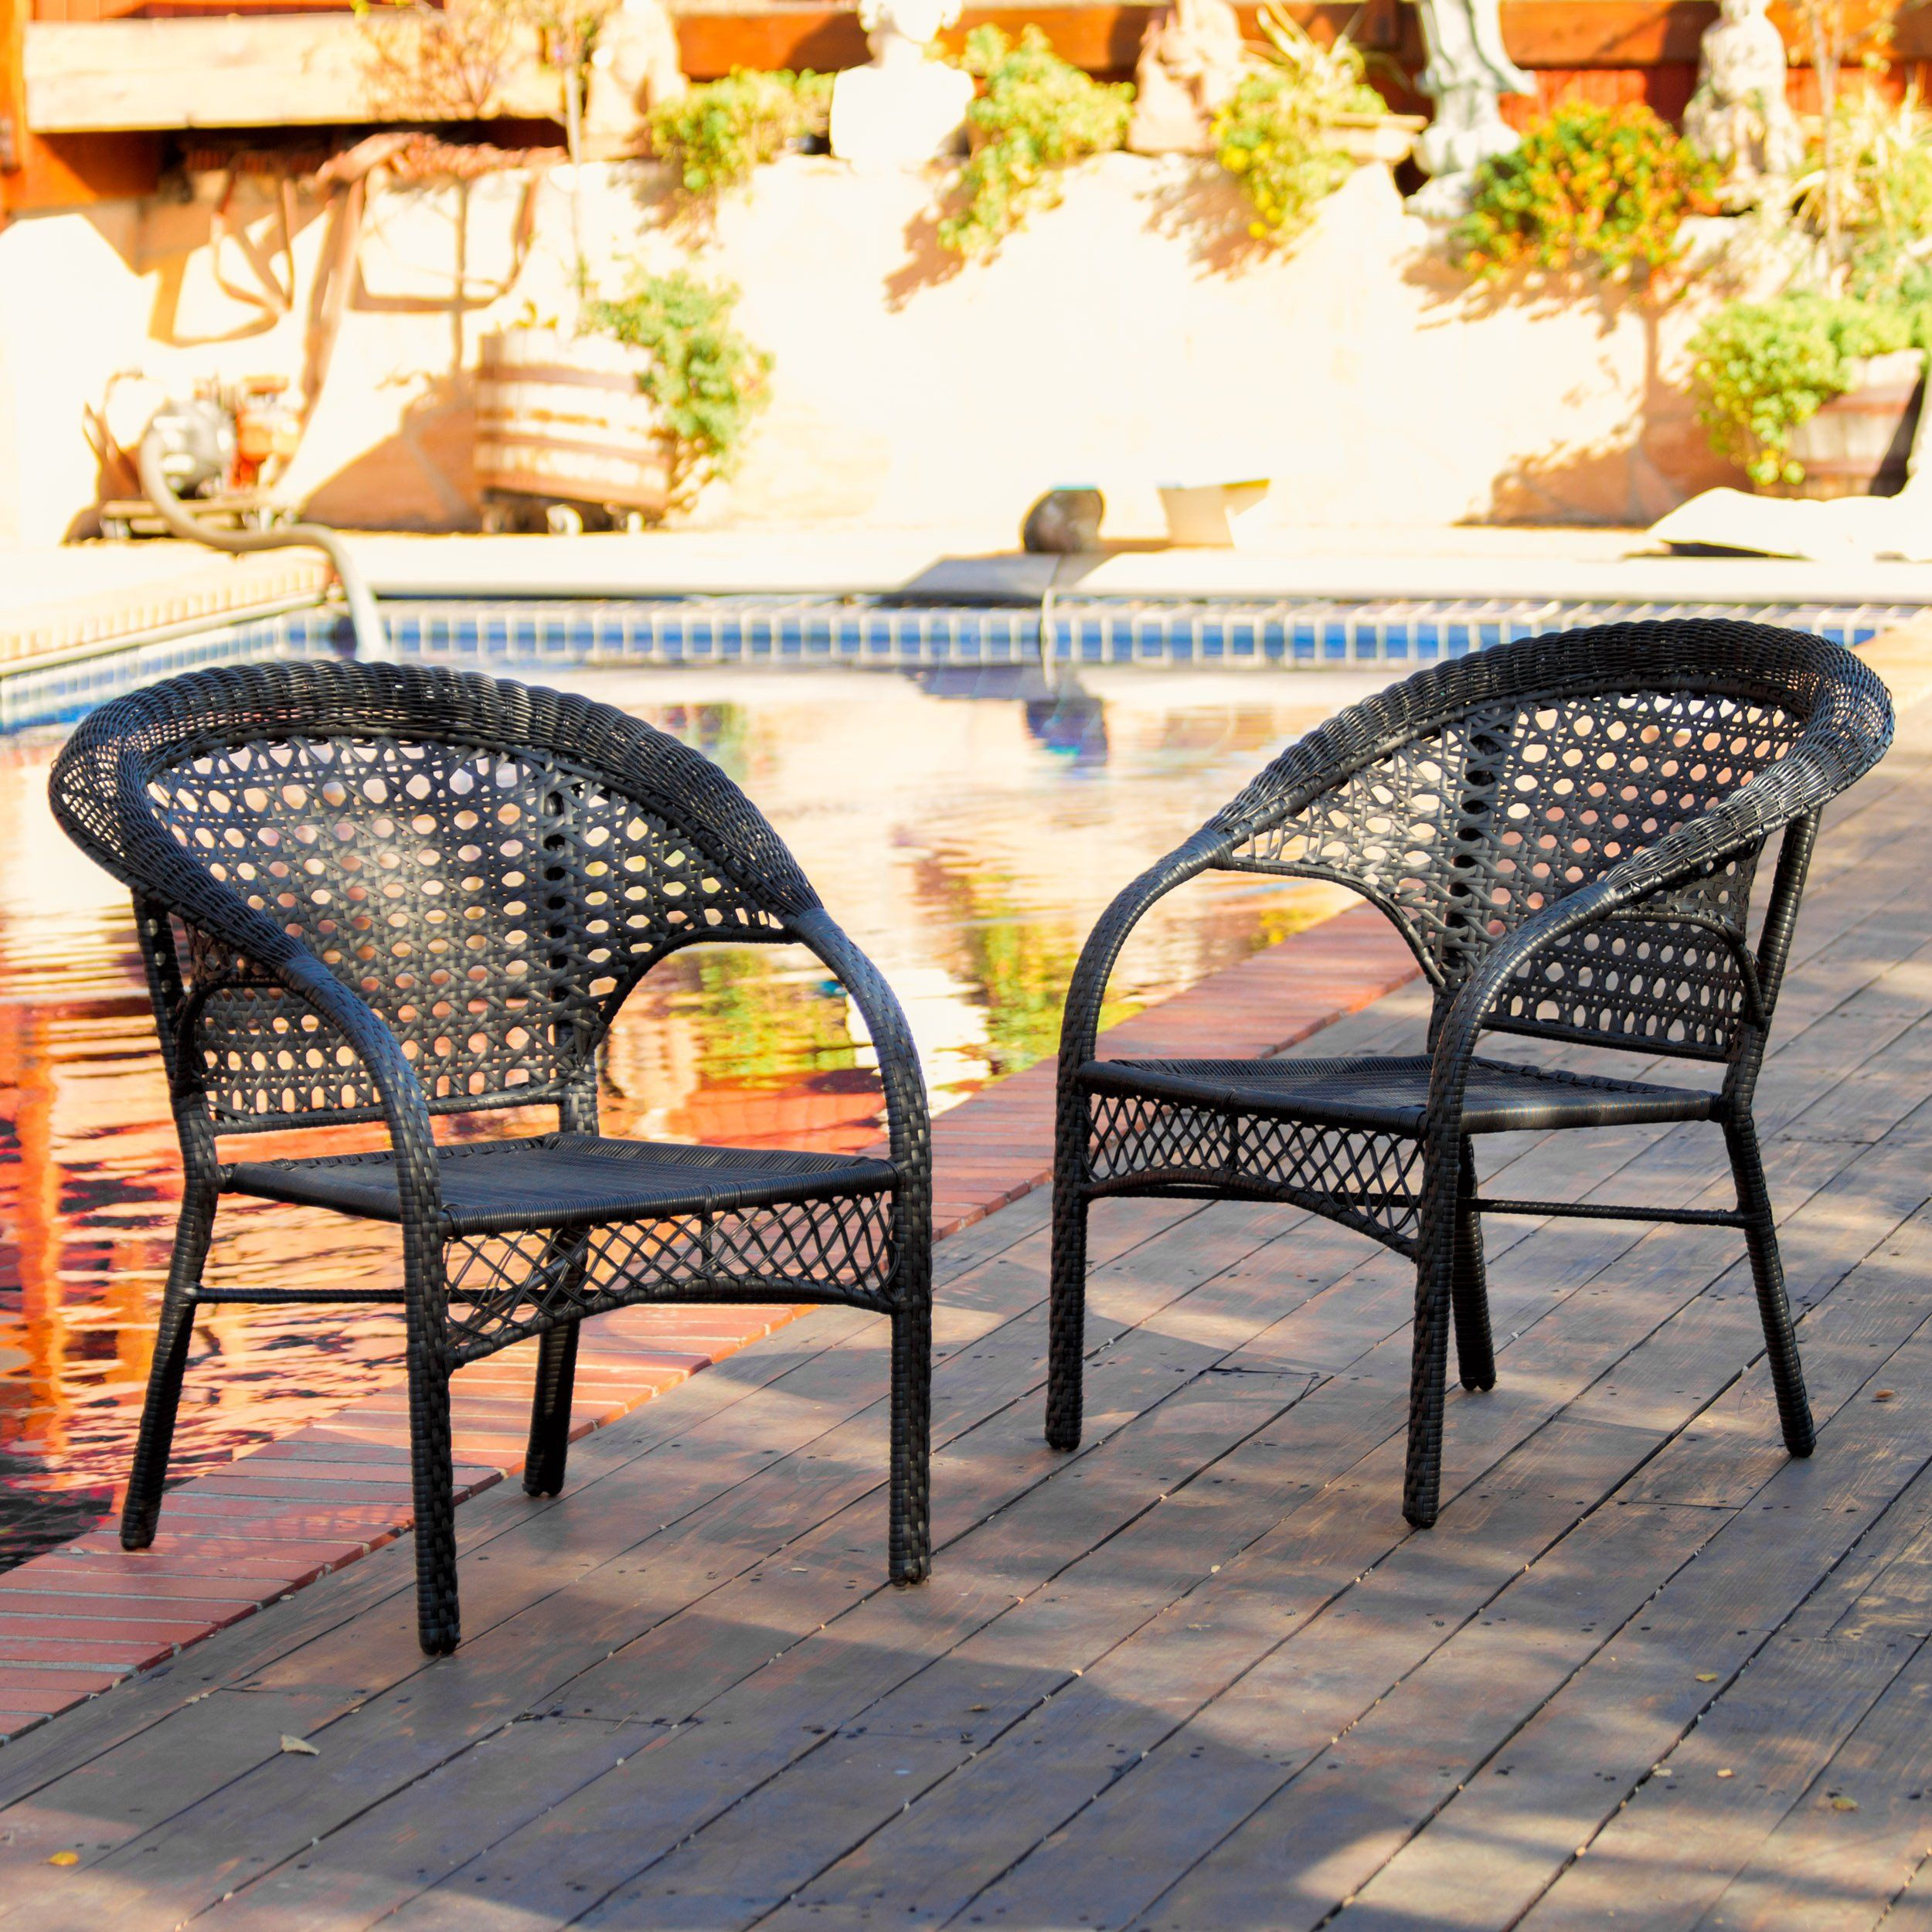 black wicker dining chairs. Malibu Patio Furniture ~ Outdoor Wicker Stacking Dining Chair (Set Of 2)( Black Chairs